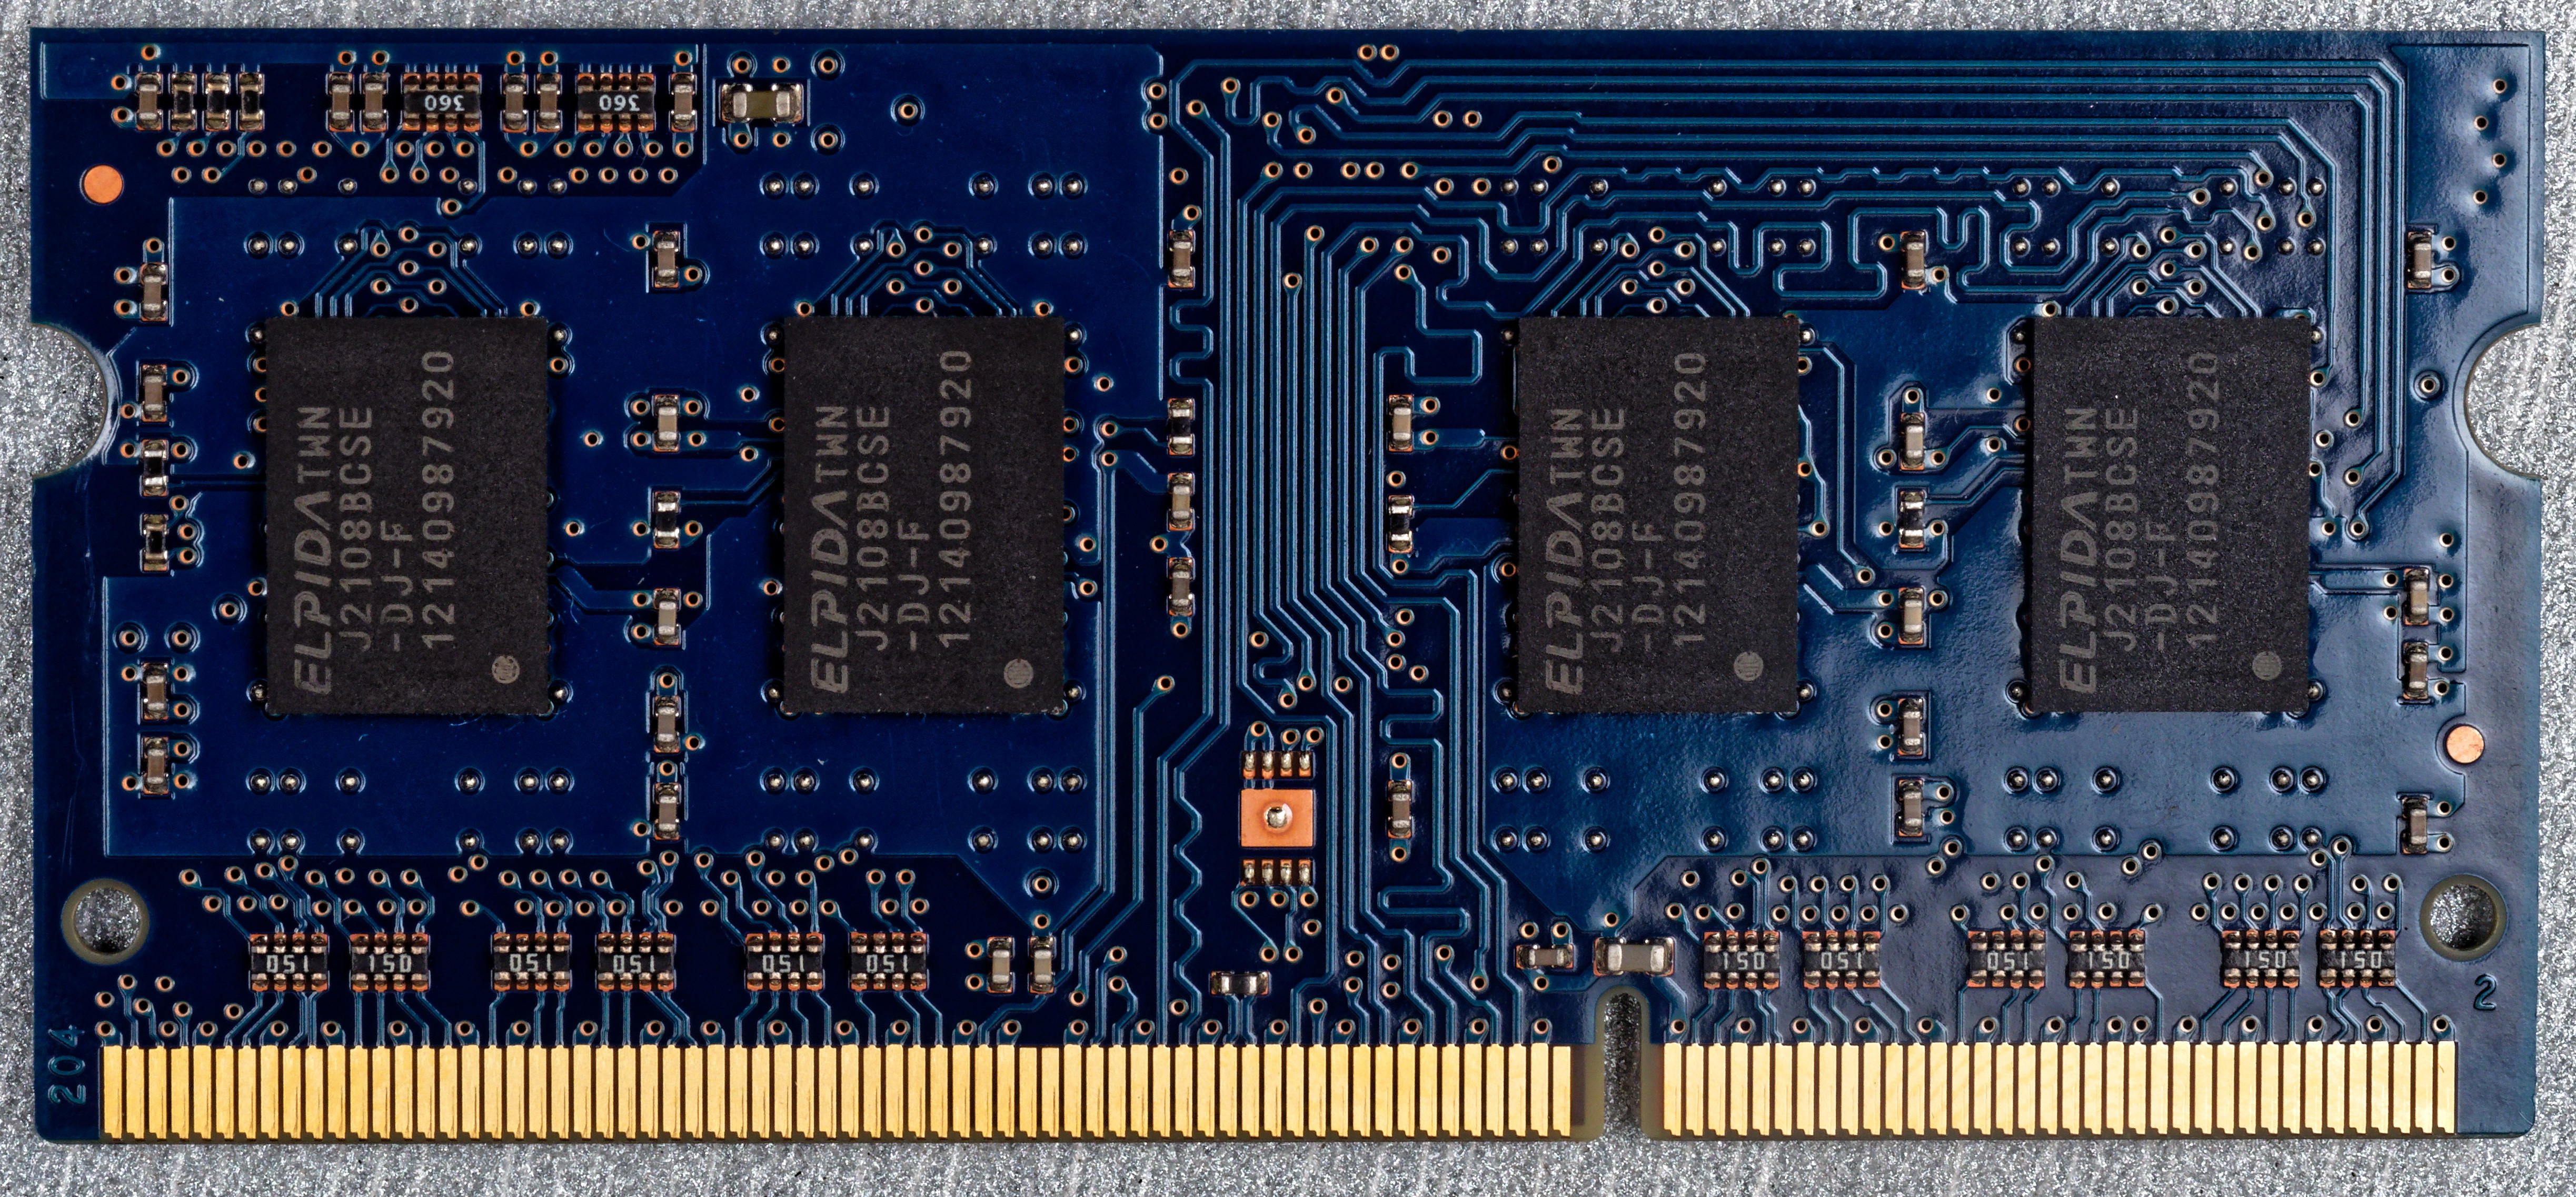 This should be Memory-chips-2.jpeg.  Is it missing?